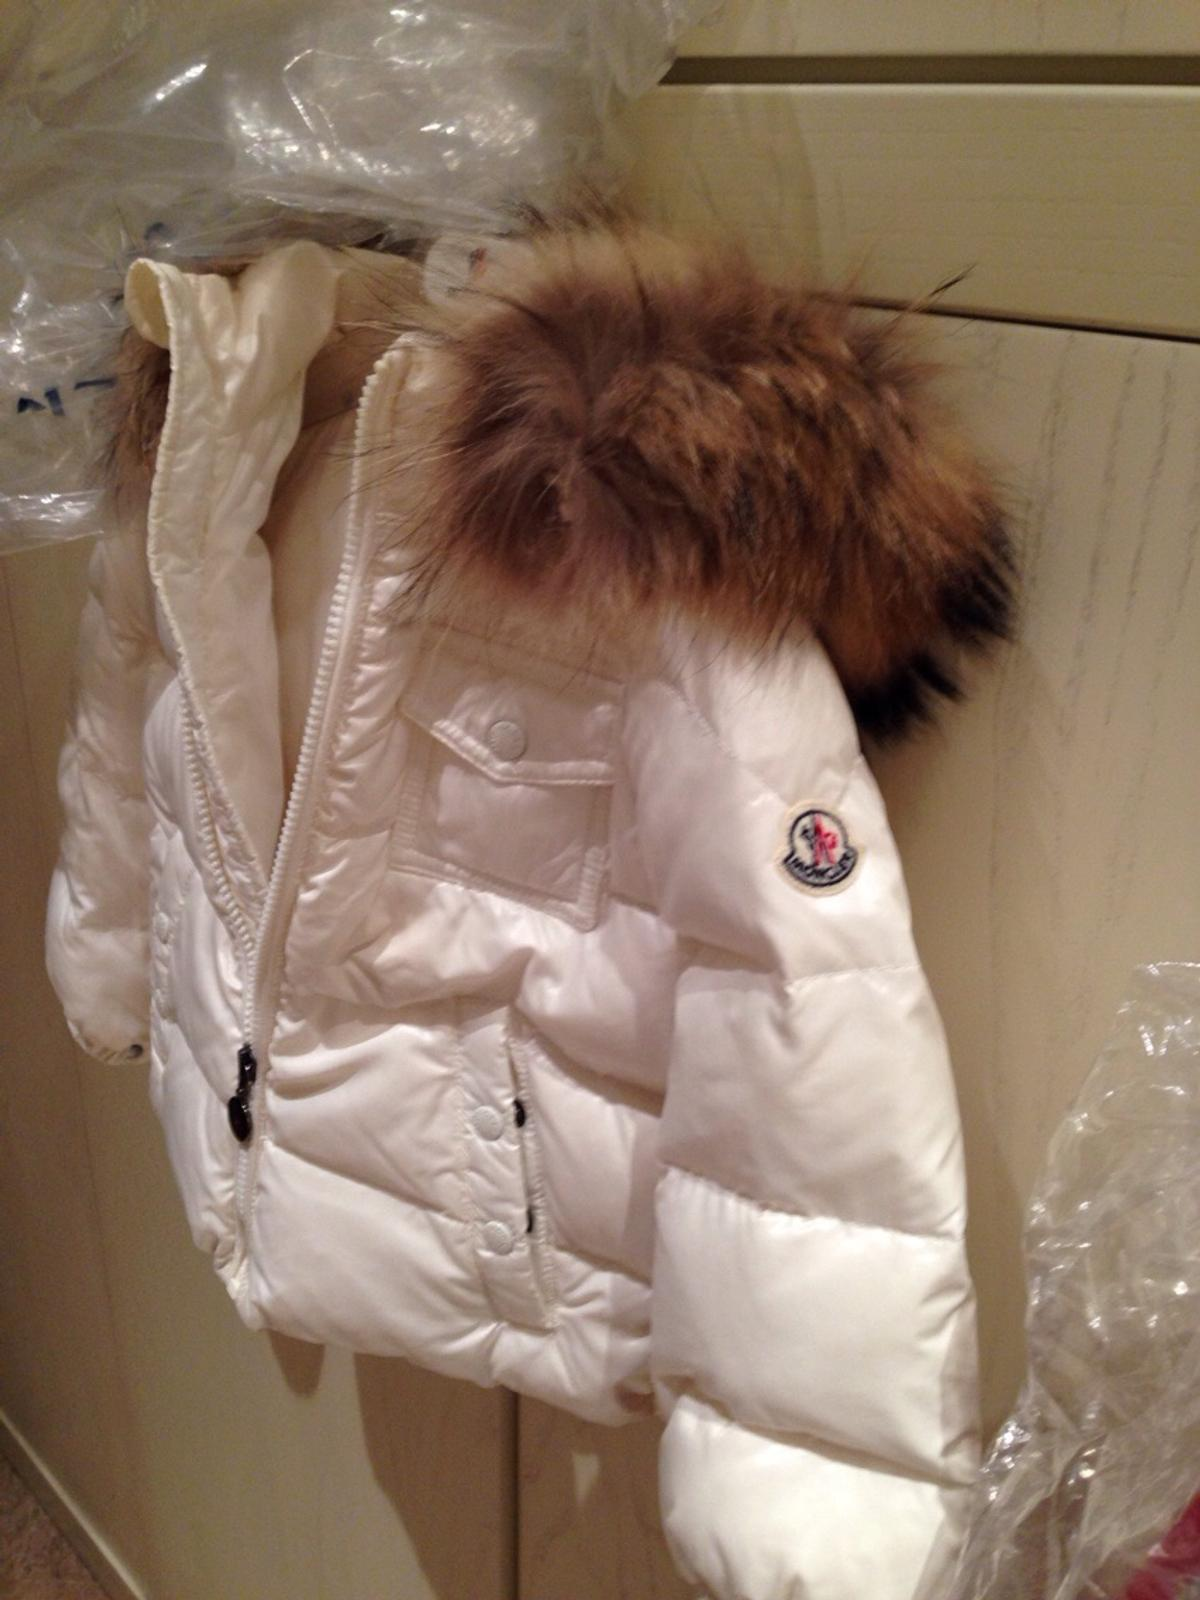 half off ec3d3 a8c6a Moncler bambina bianco 2-3 anni in 80132 Napoli for €100.00 ...